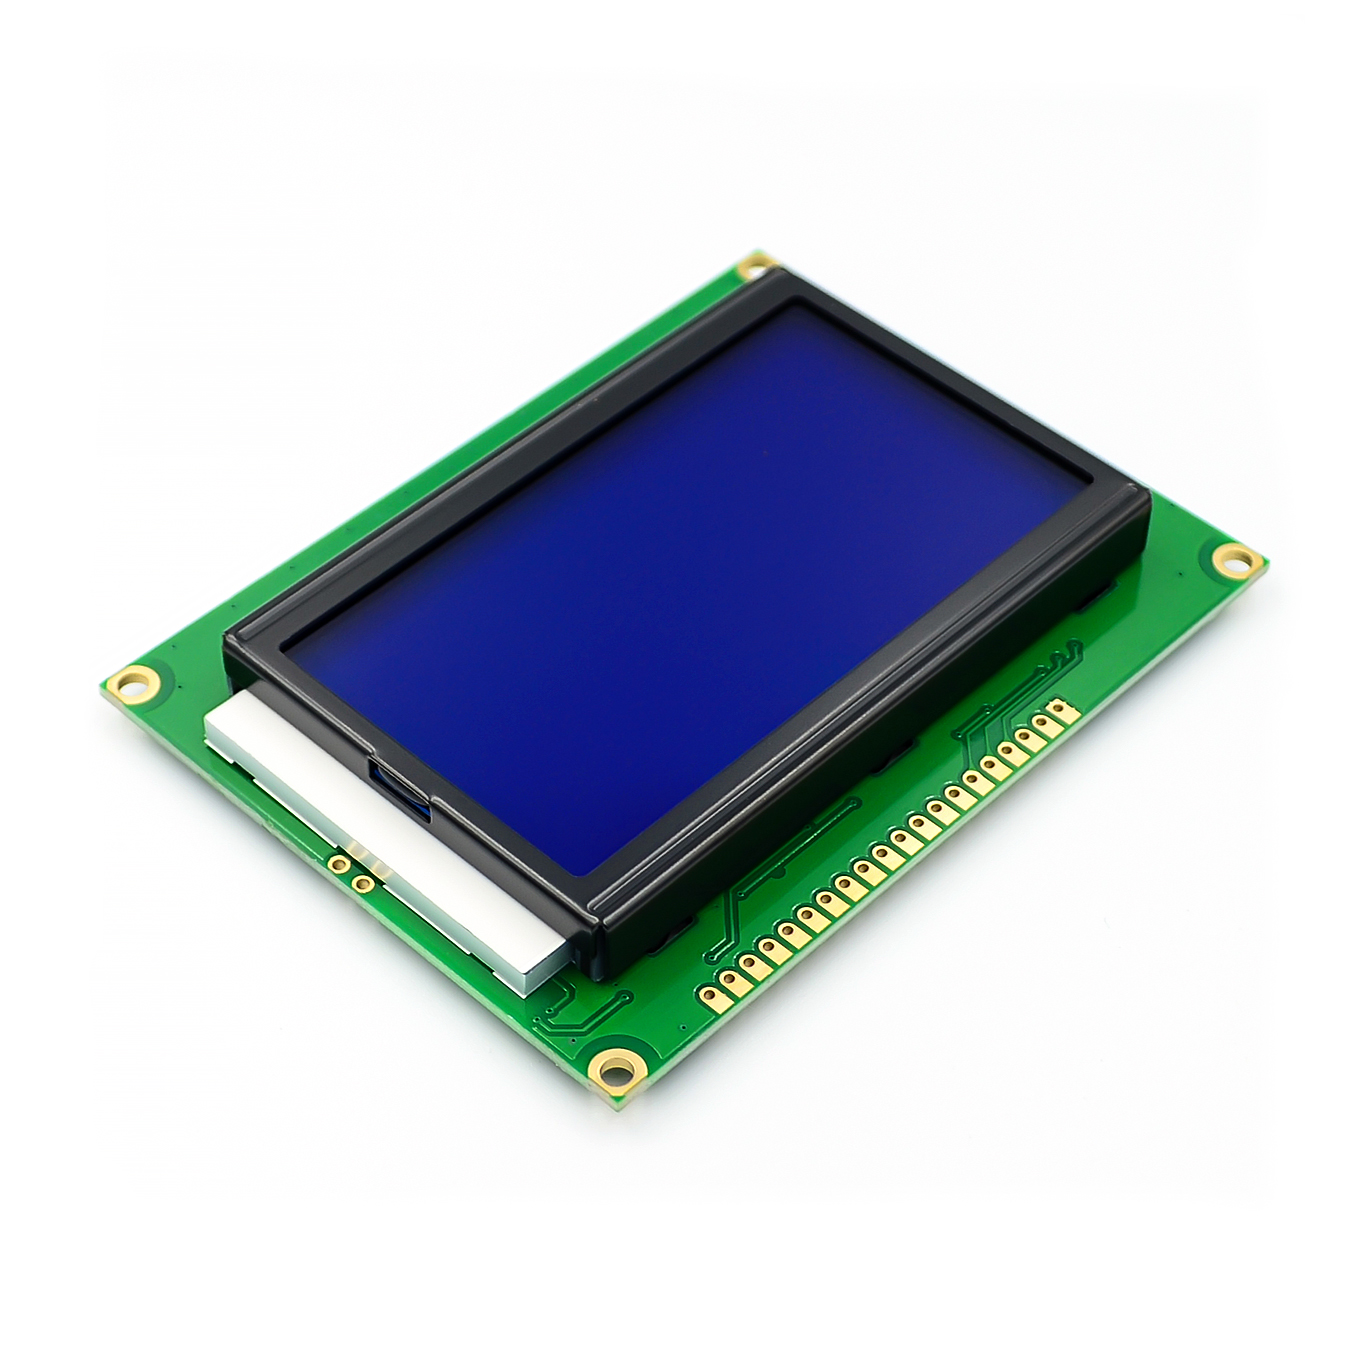 5PCS/LOT LCD Board Yellow Green Screen 12864 128X64 5V blue screen display ST7920 LCD module for arduino 100% new original5PCS/LOT LCD Board Yellow Green Screen 12864 128X64 5V blue screen display ST7920 LCD module for arduino 100% new original